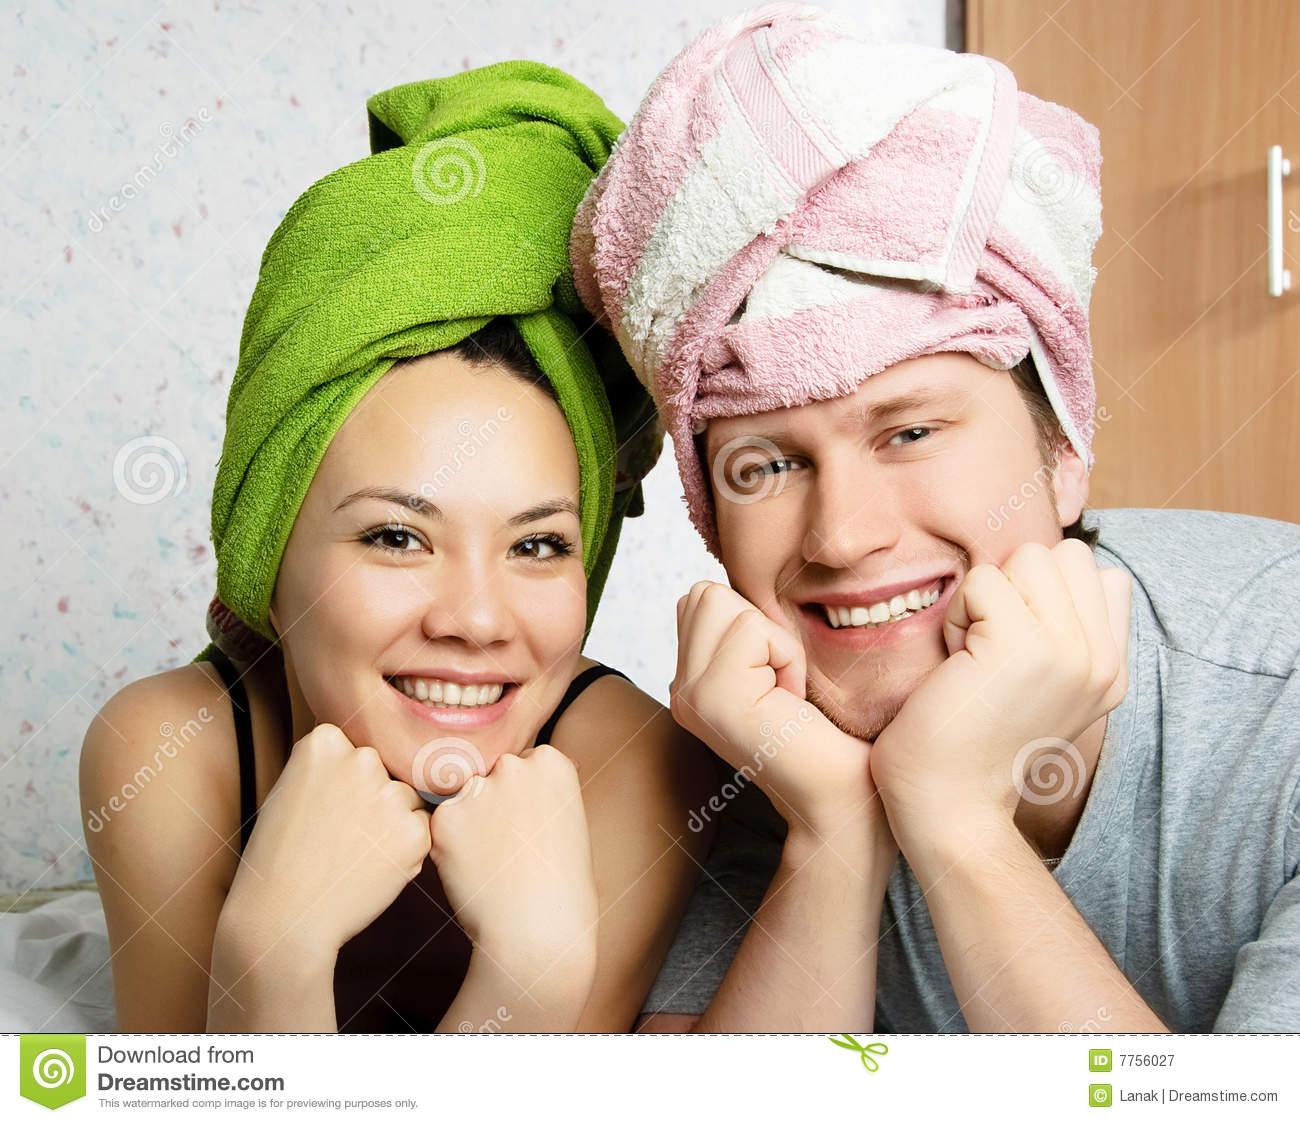 Happy couple with towels on their heads